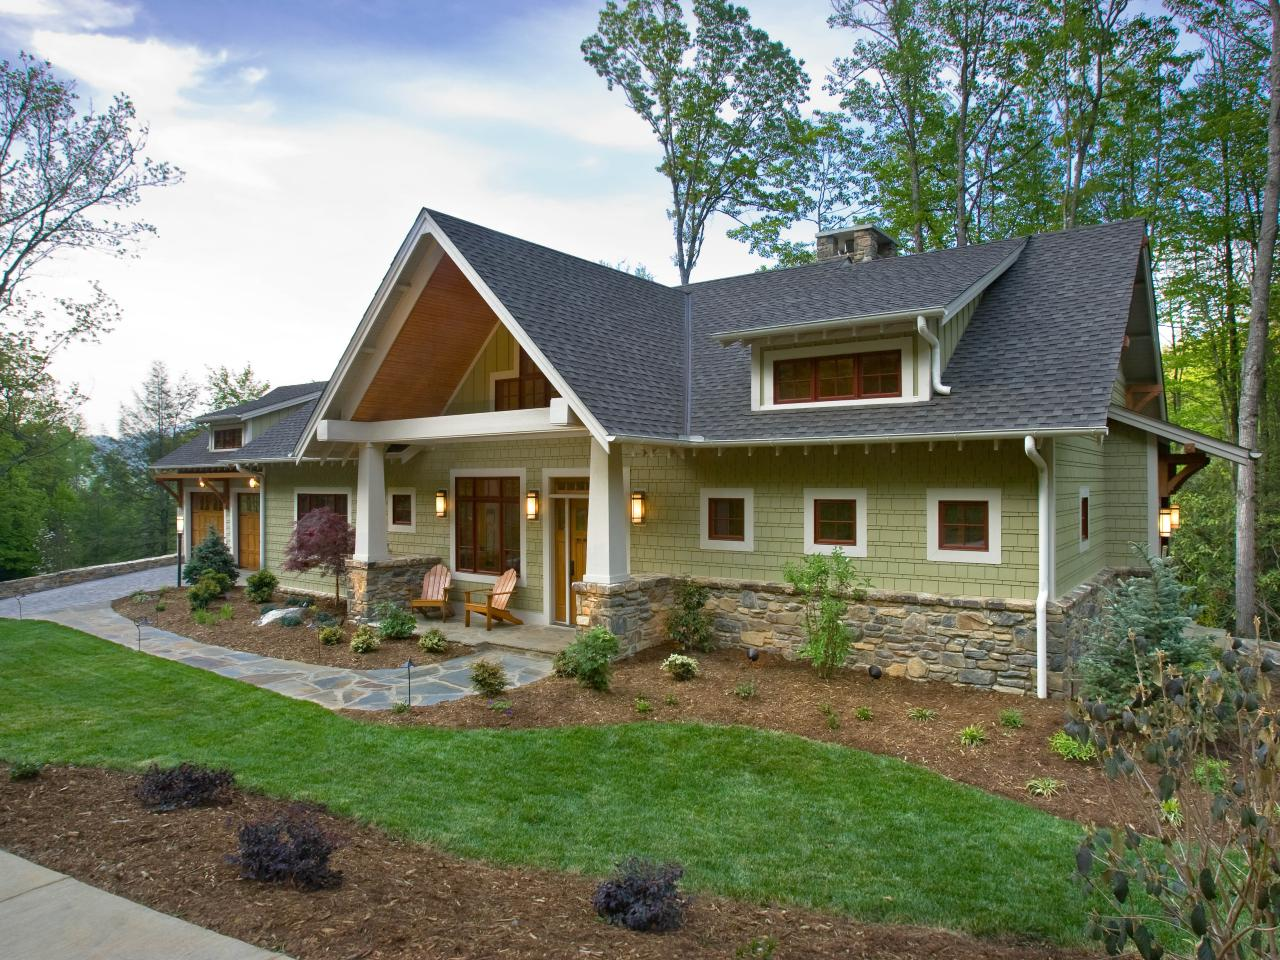 Olive craftsman exterior with stunning curb appeal hgtv for Craftsman landscape design ideas